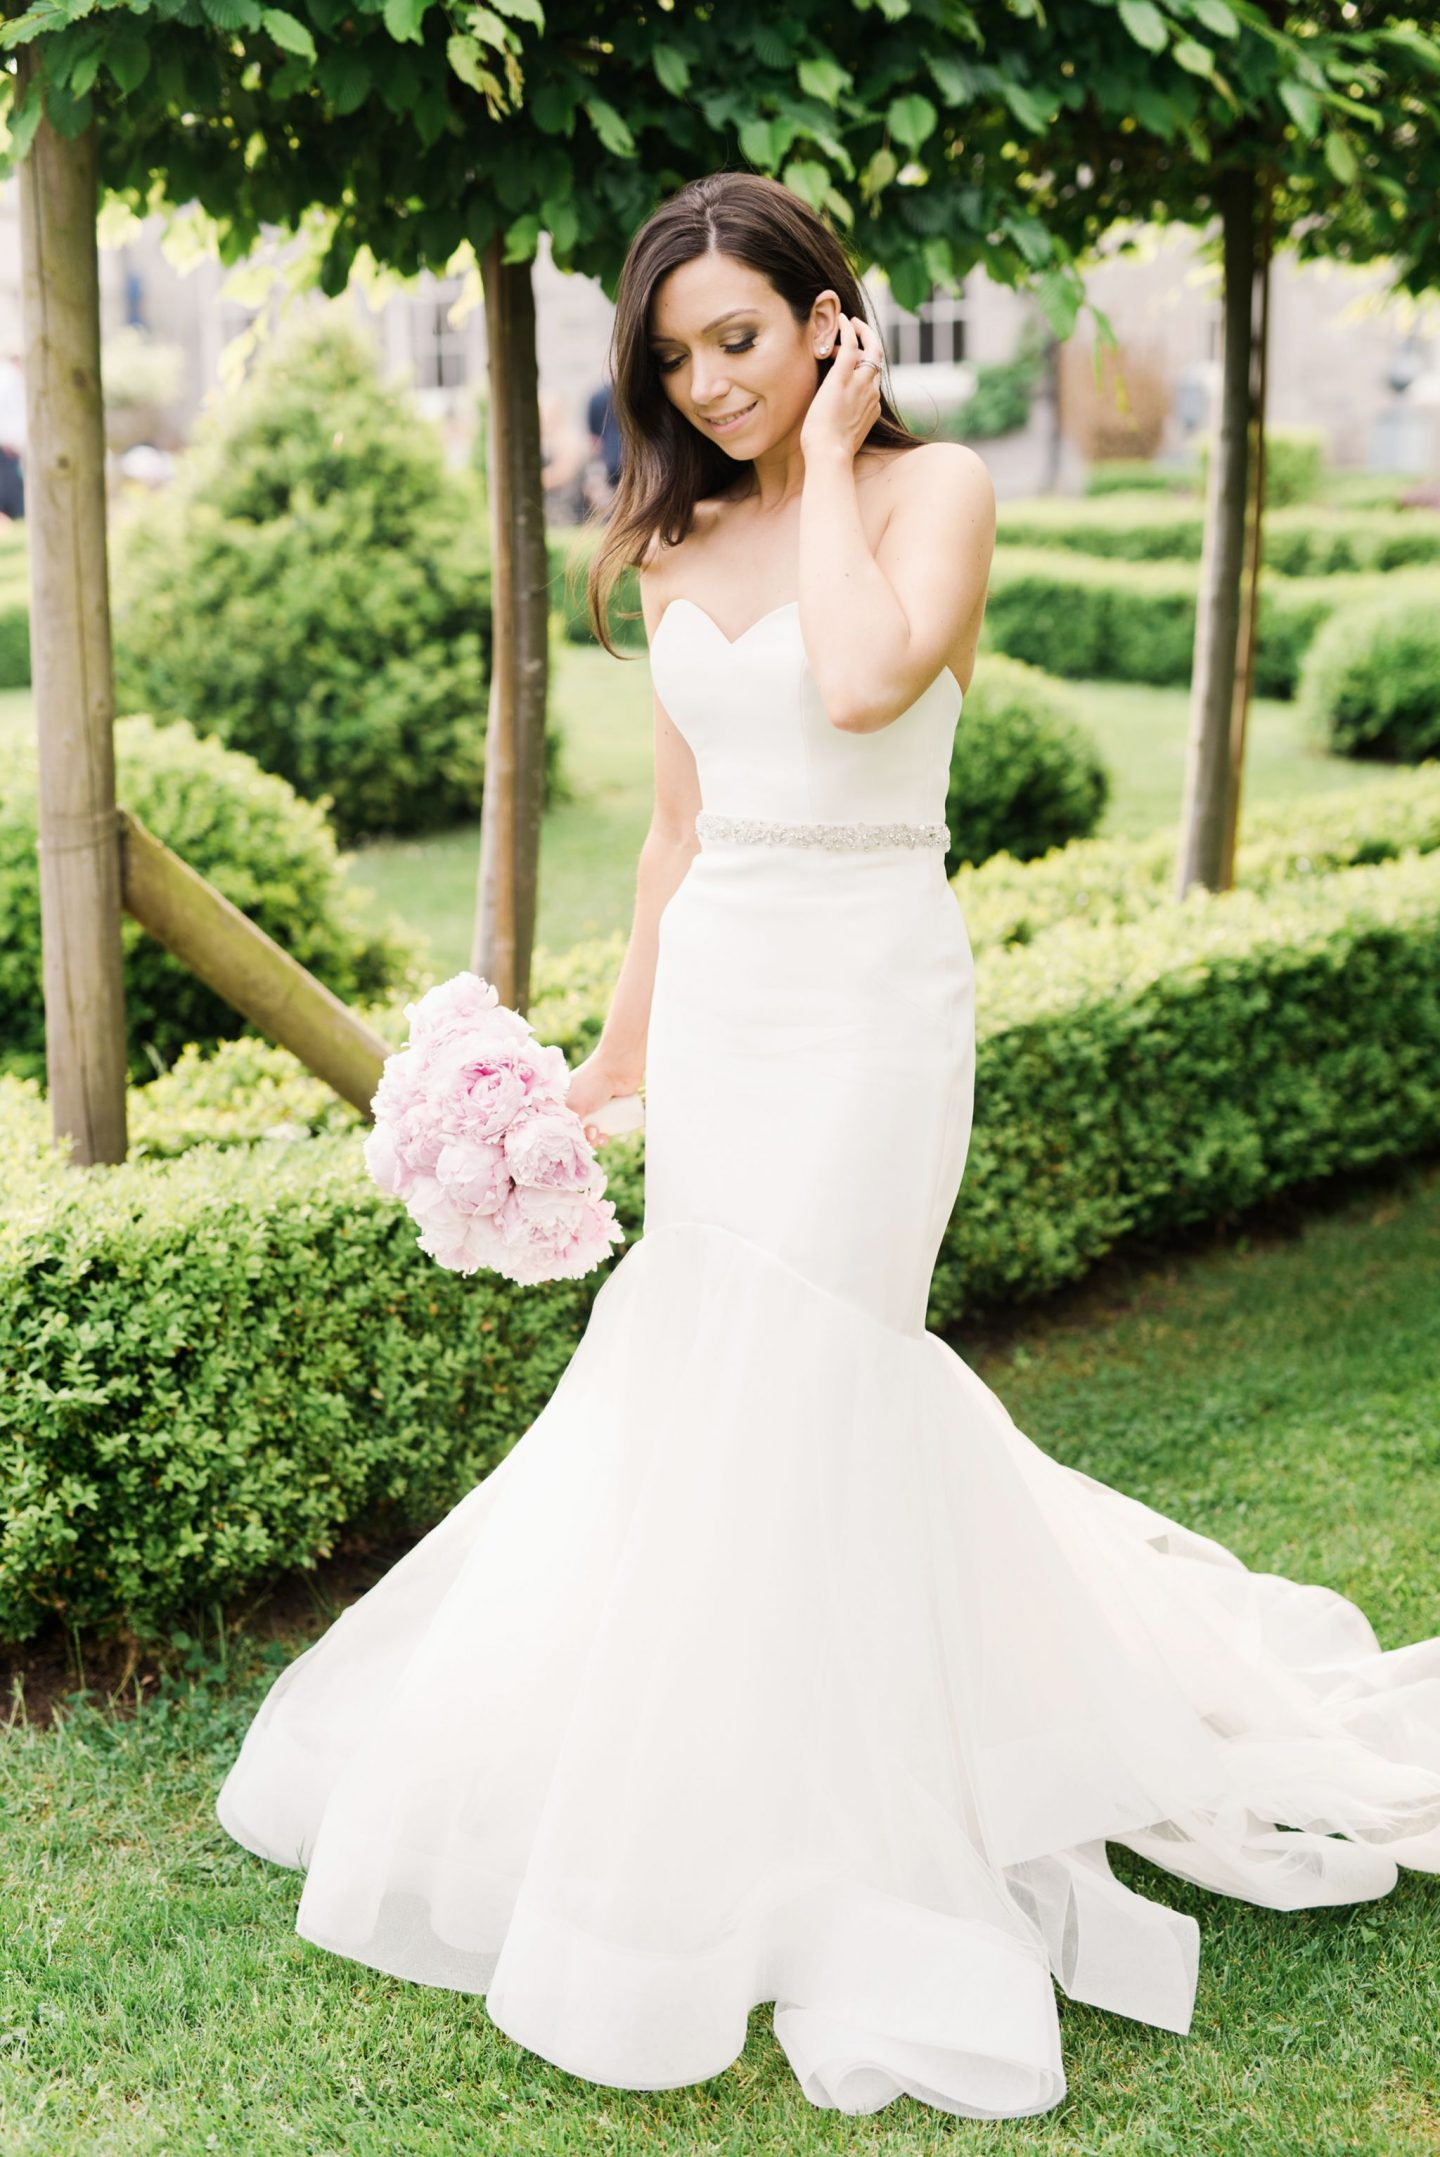 wedding, finding my wedding dress, wedding dress, Katalina enzoani blue, blue by enzoani, enzoani real brides, katalina dress, fishtail wedding dress, dizzybrunette3 wedding, emma pilkington wedding photography, emma pilkington wedding, wedding dress goals, wedding dress shopping advice,